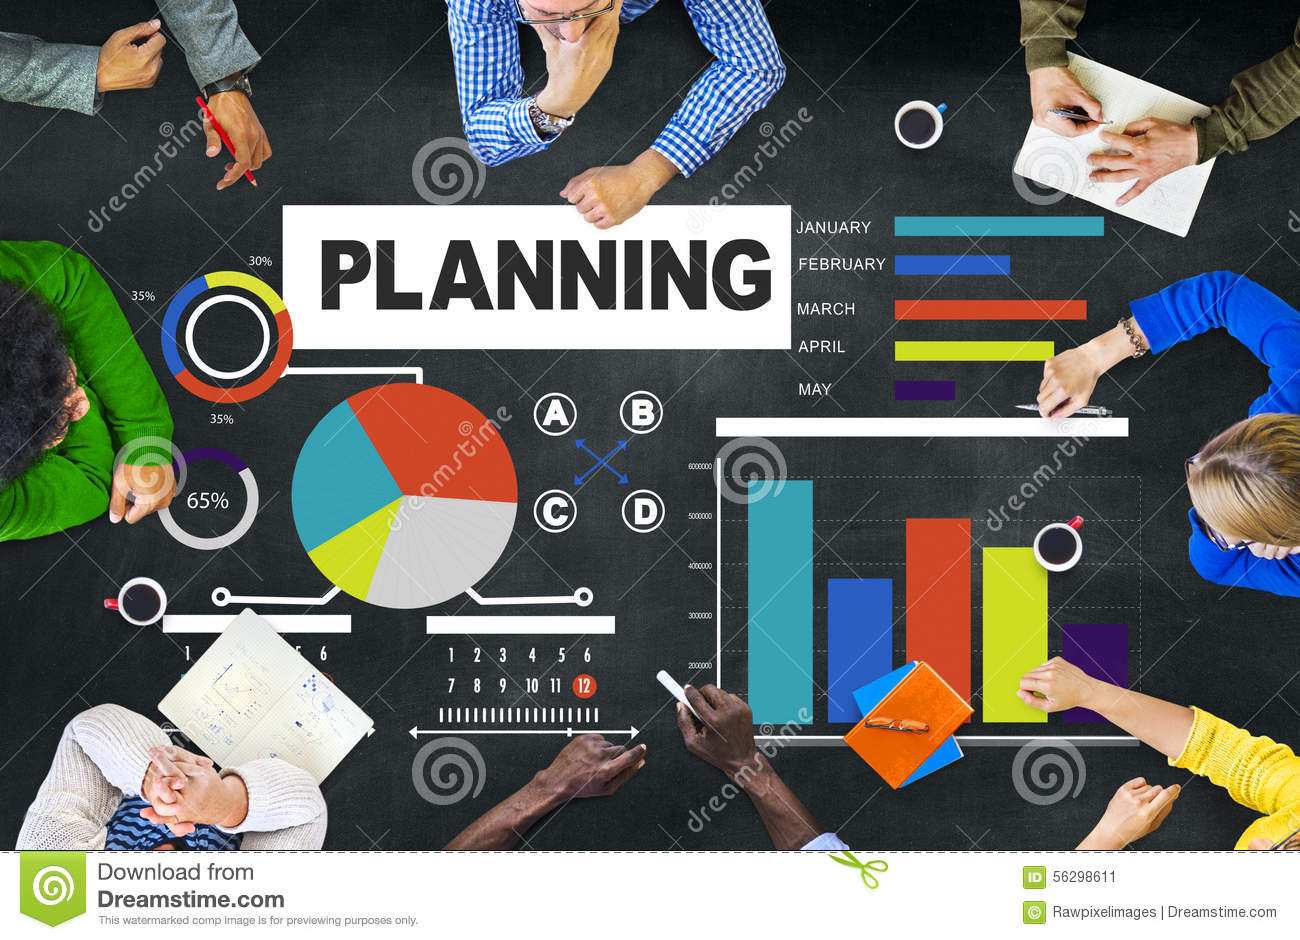 a discussion of management planning The management planning process starts with defining a big picture vision and should then set achievable steps and benchmarks for realizing that vision.